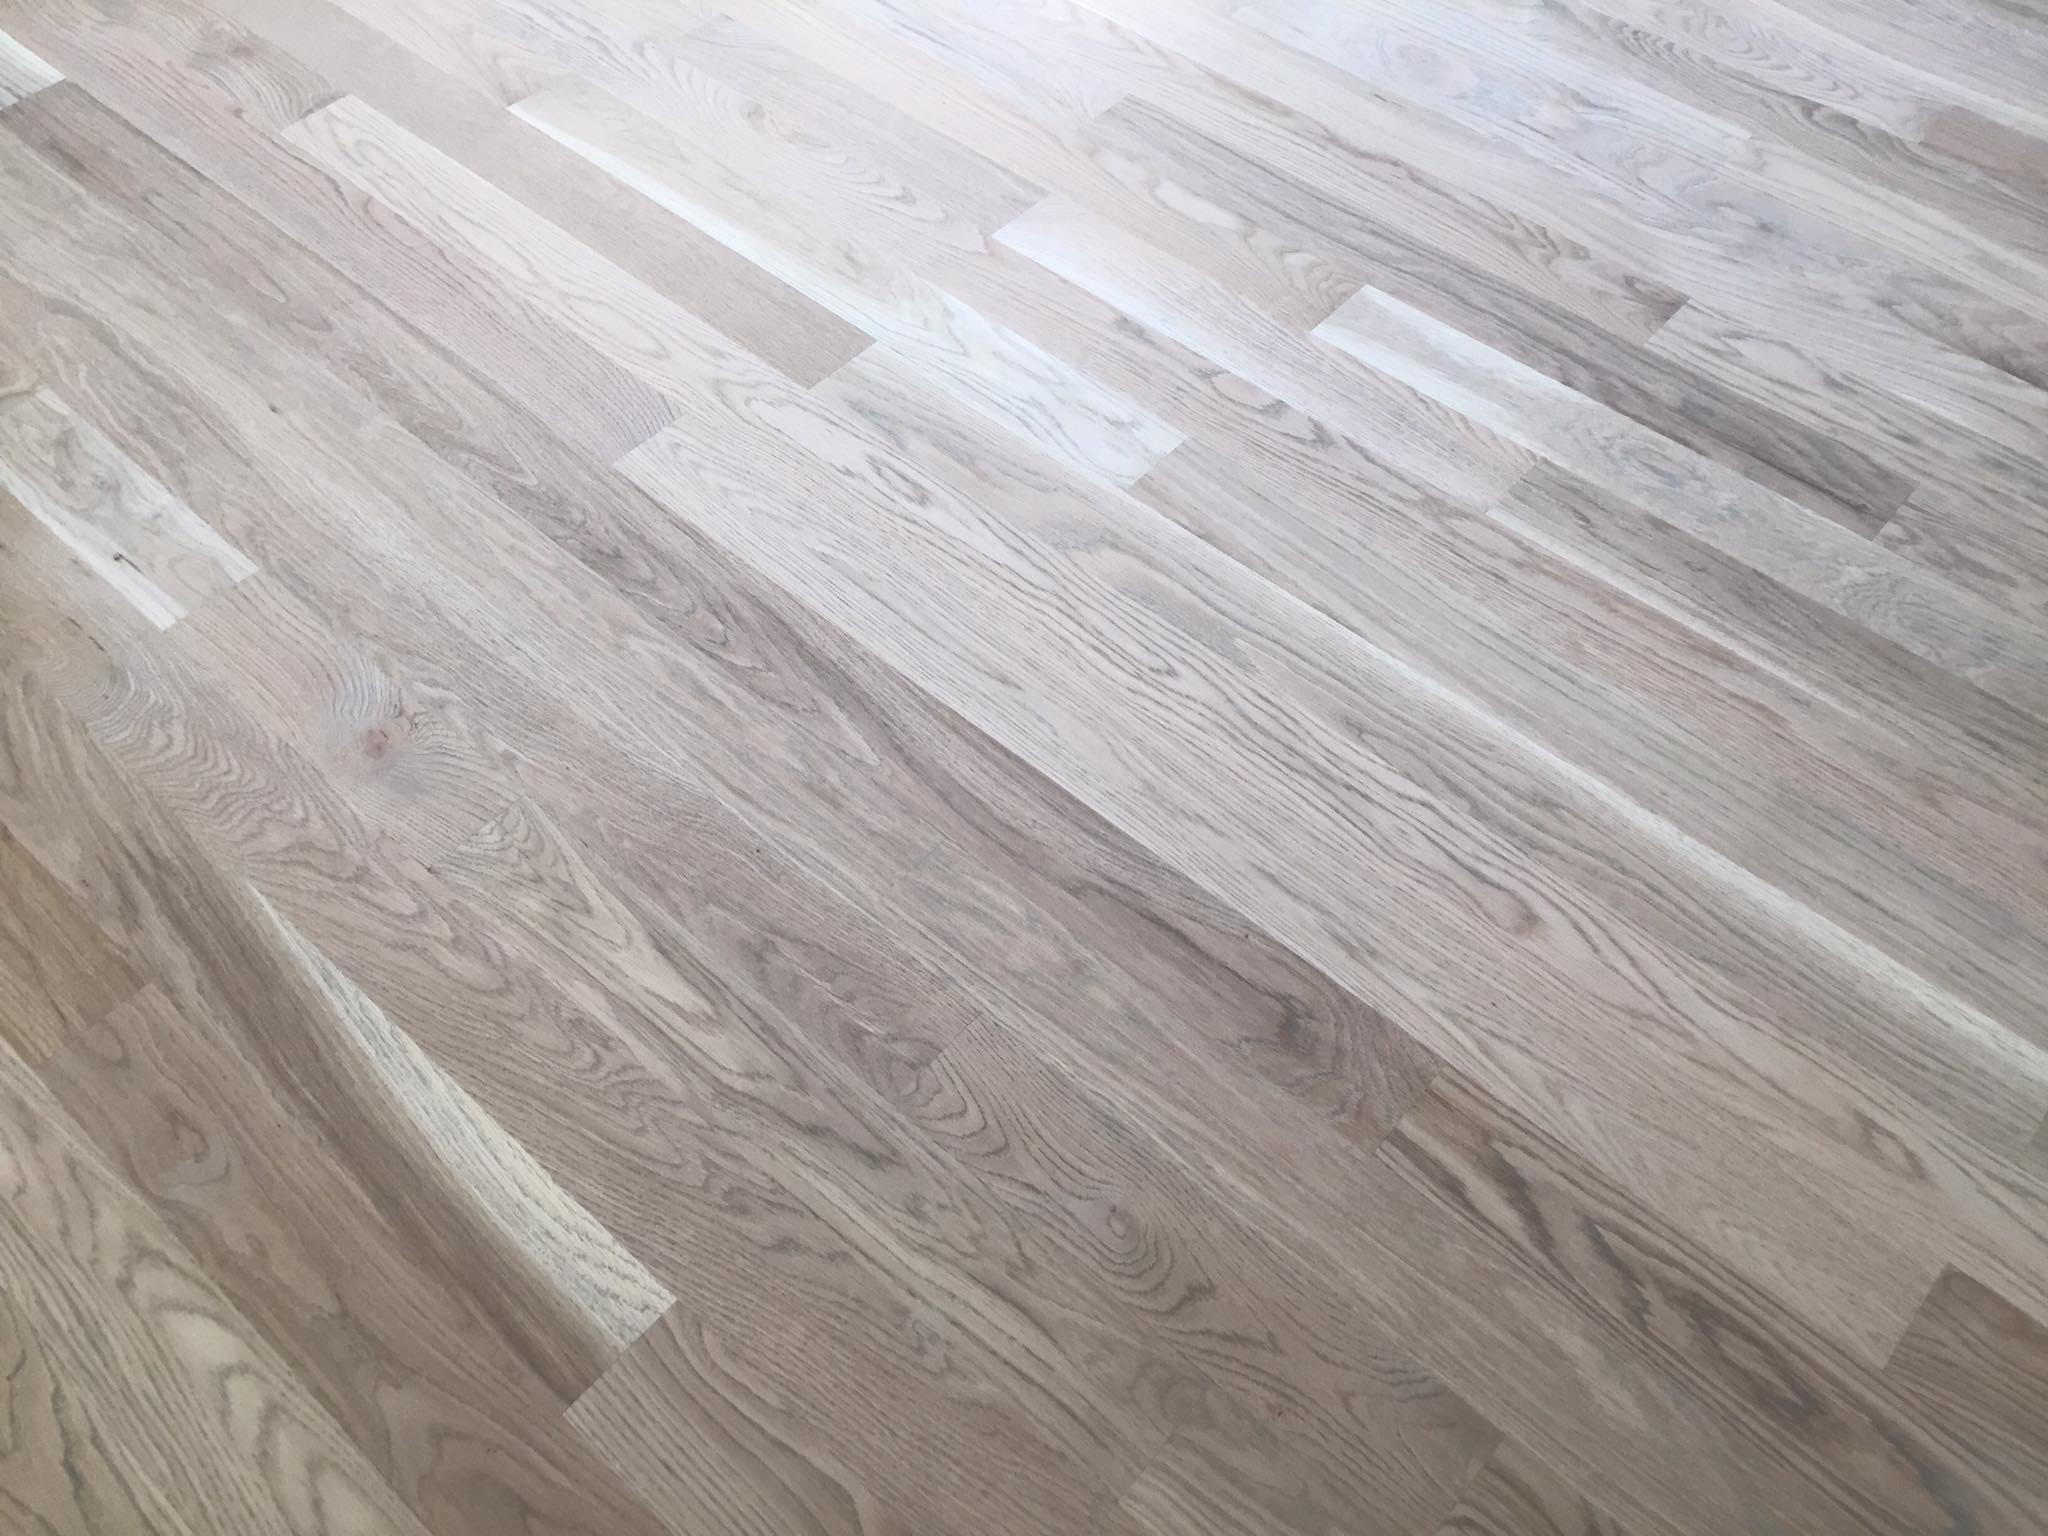 Solid white oak 3 1 4 hardwood floor installation chicago for 1 floor